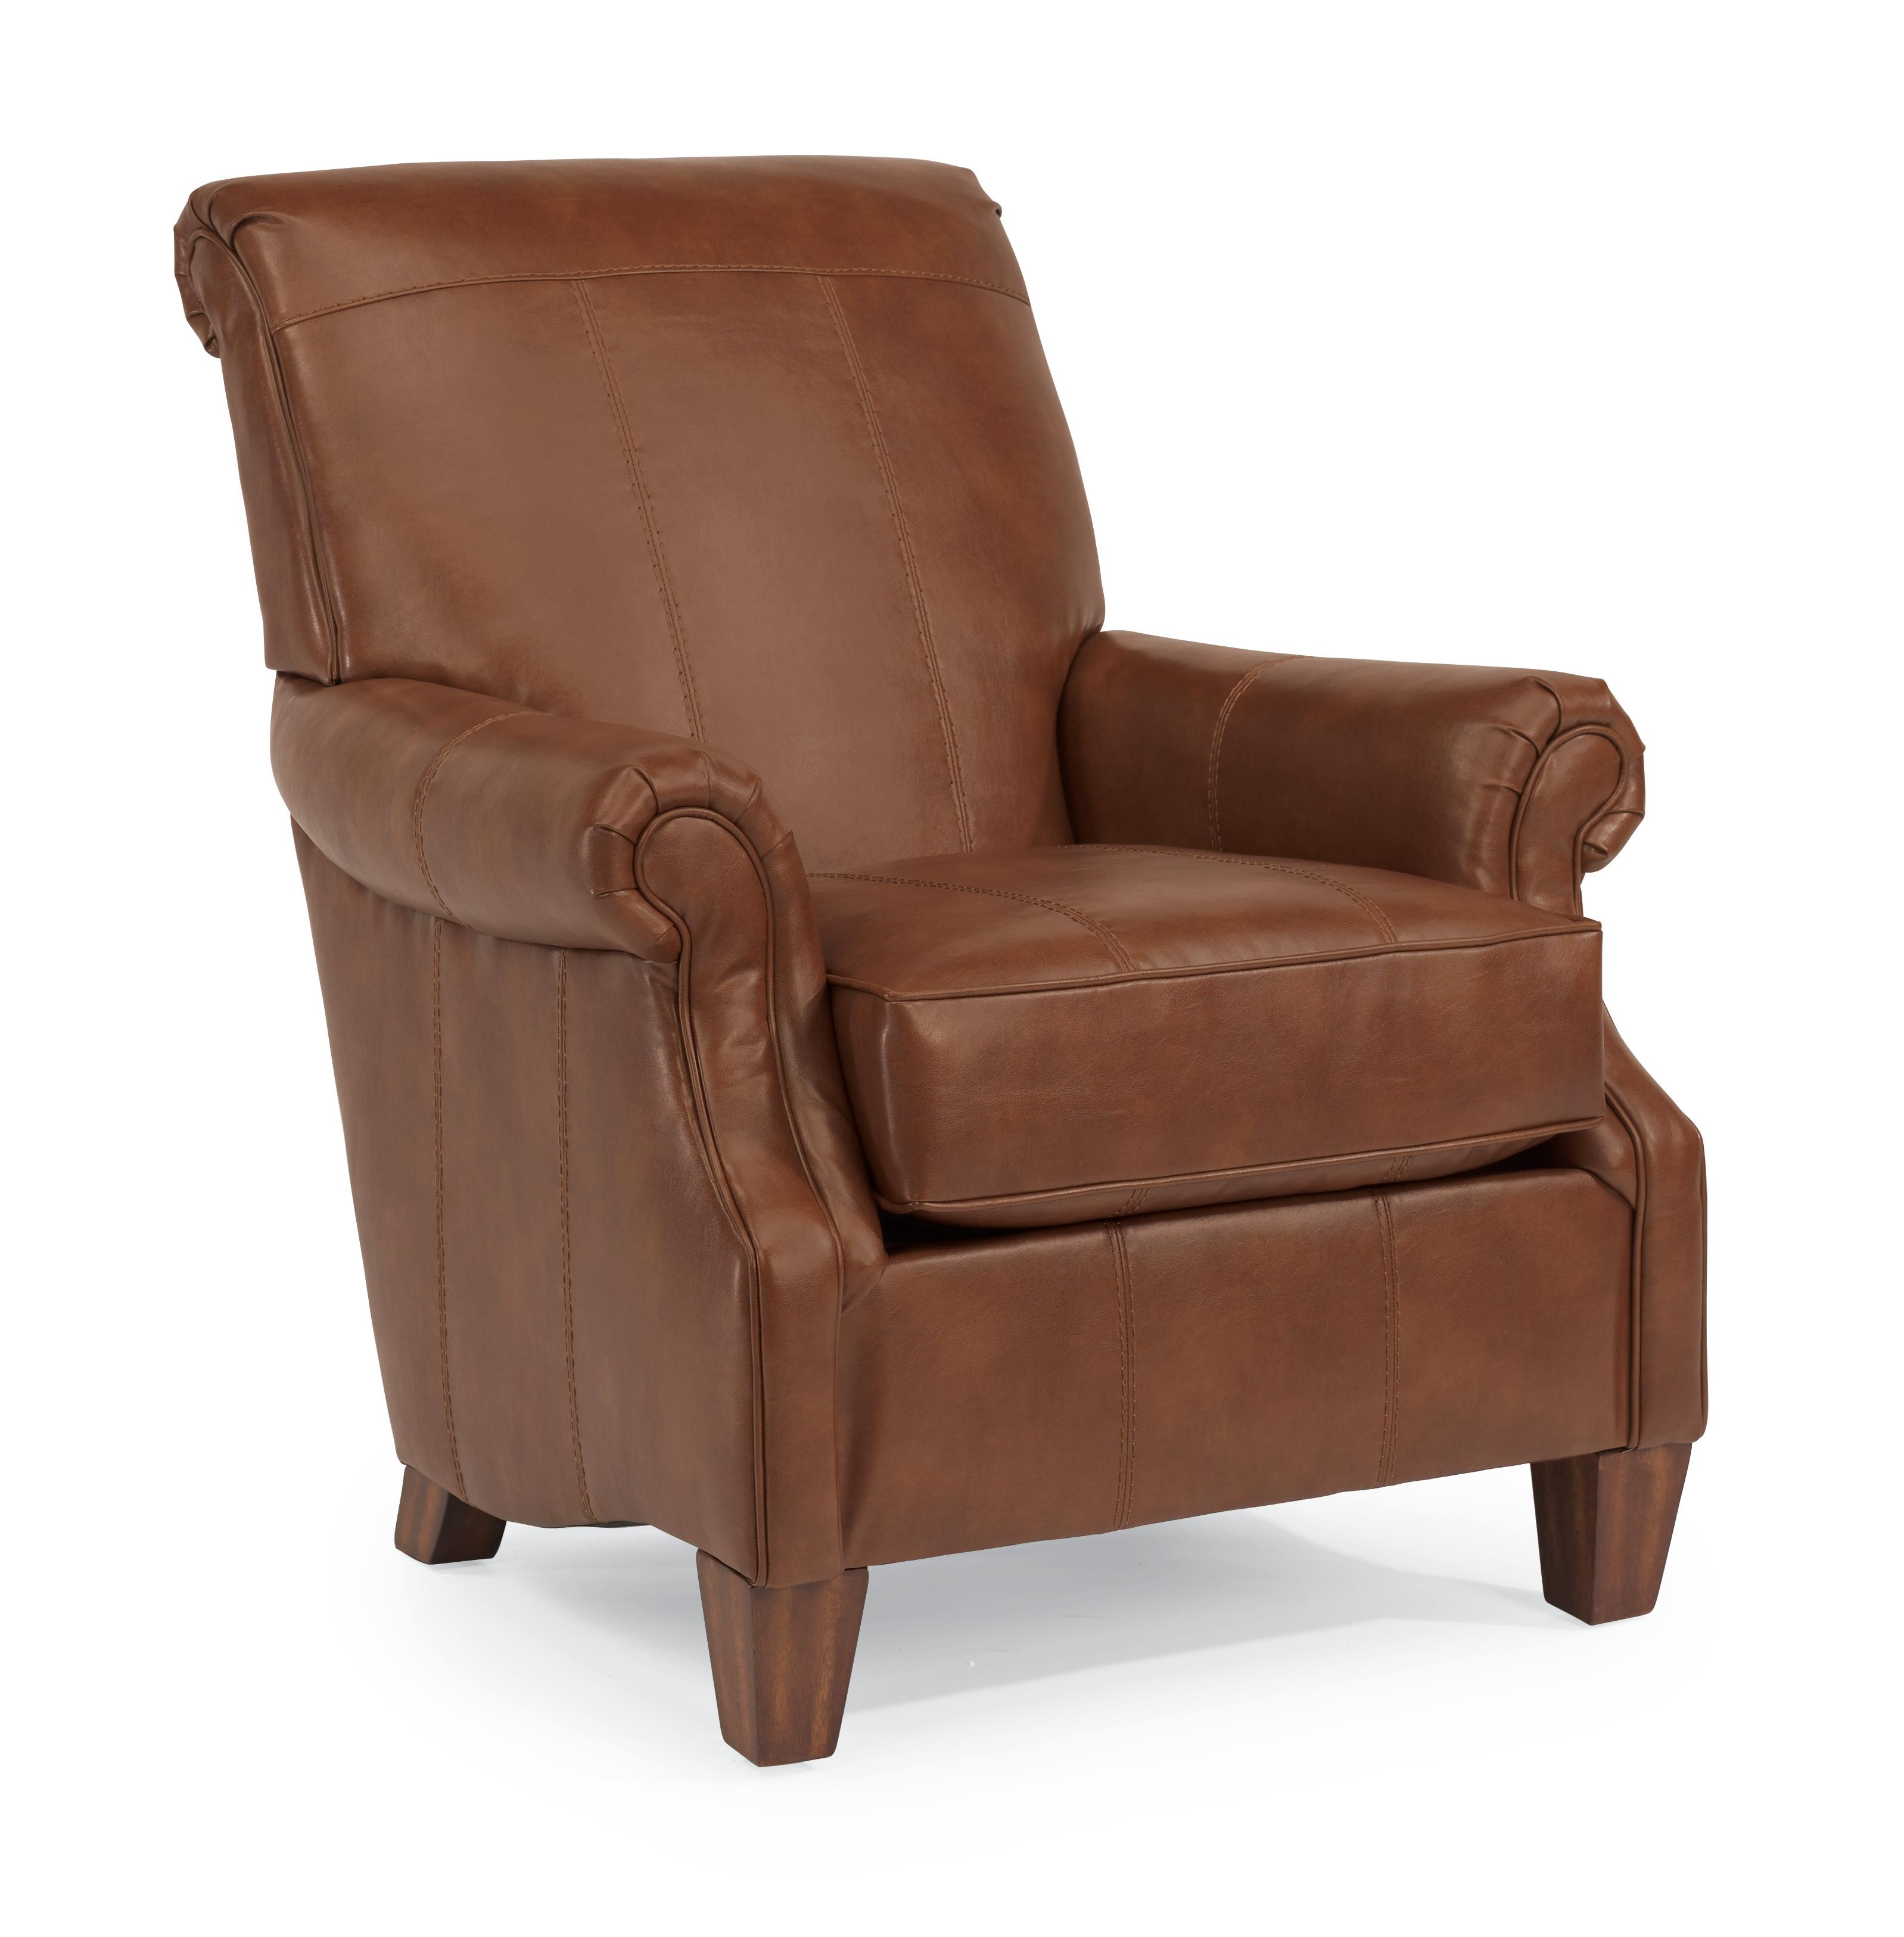 Flexsteel stafford c traditional styled accent chair